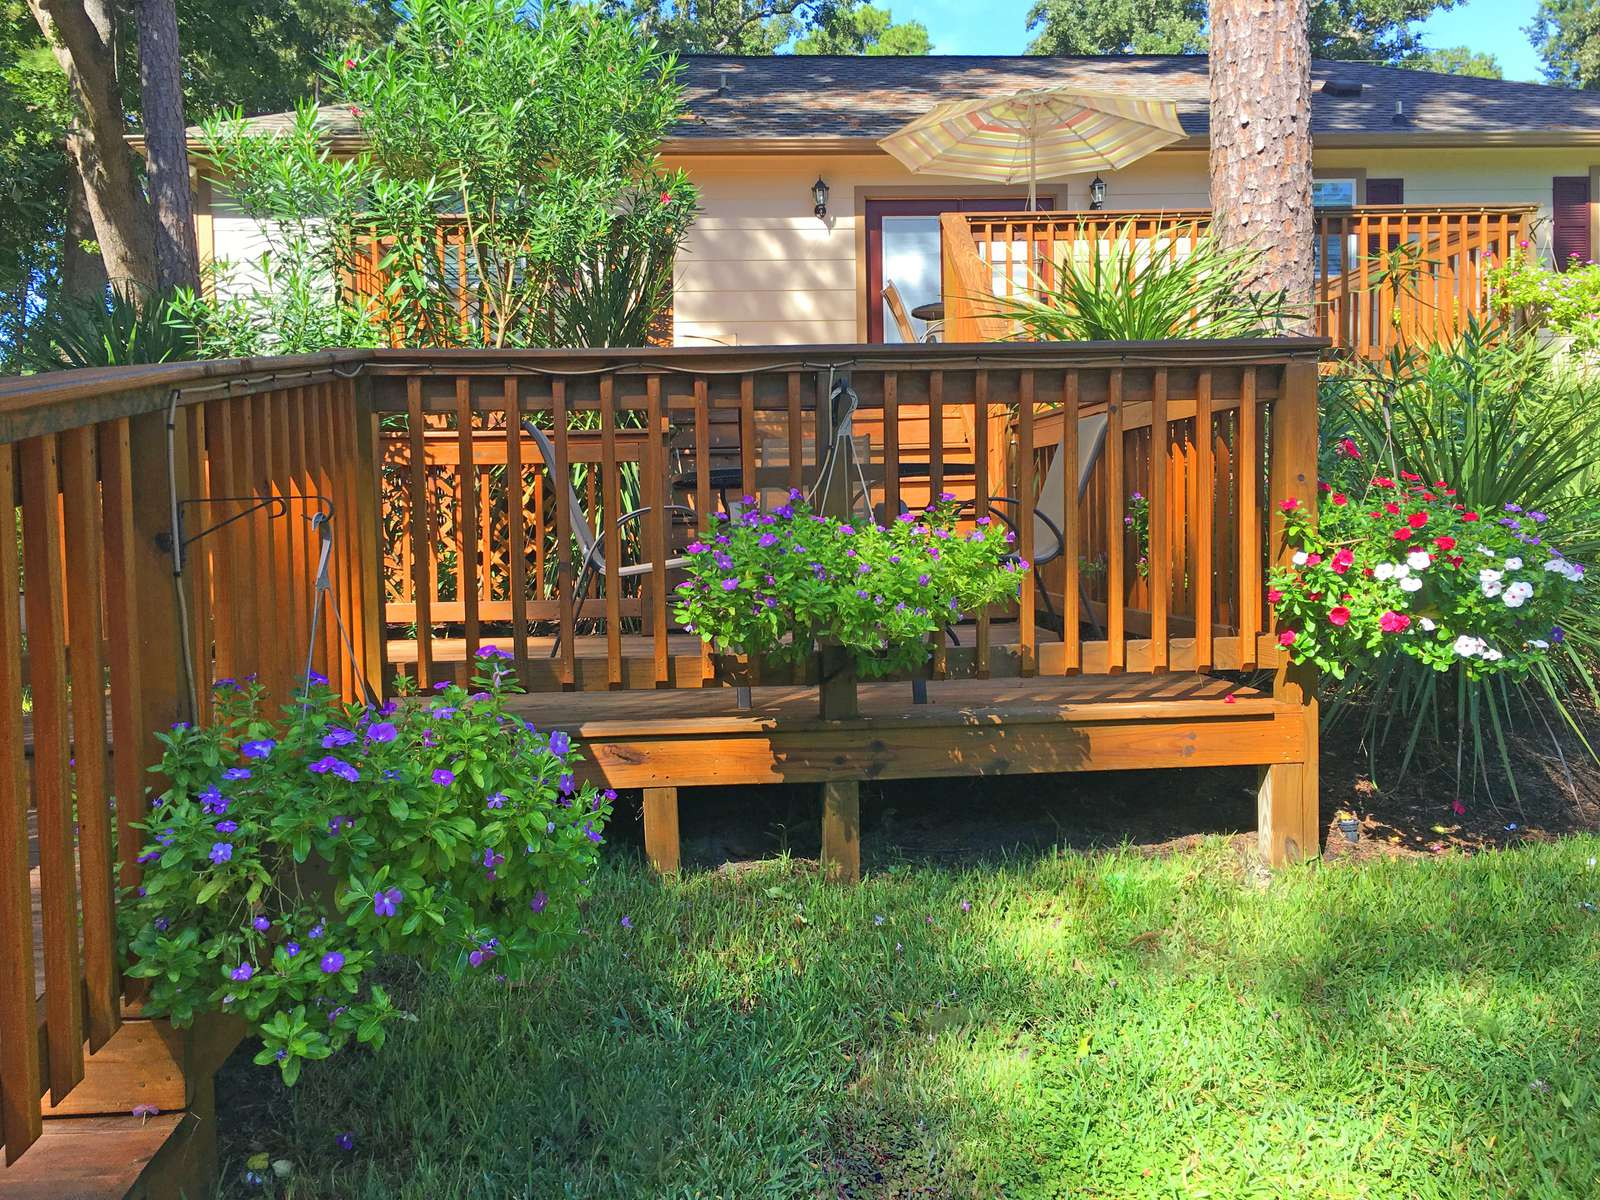 Summertime brings loads of color to our properties.